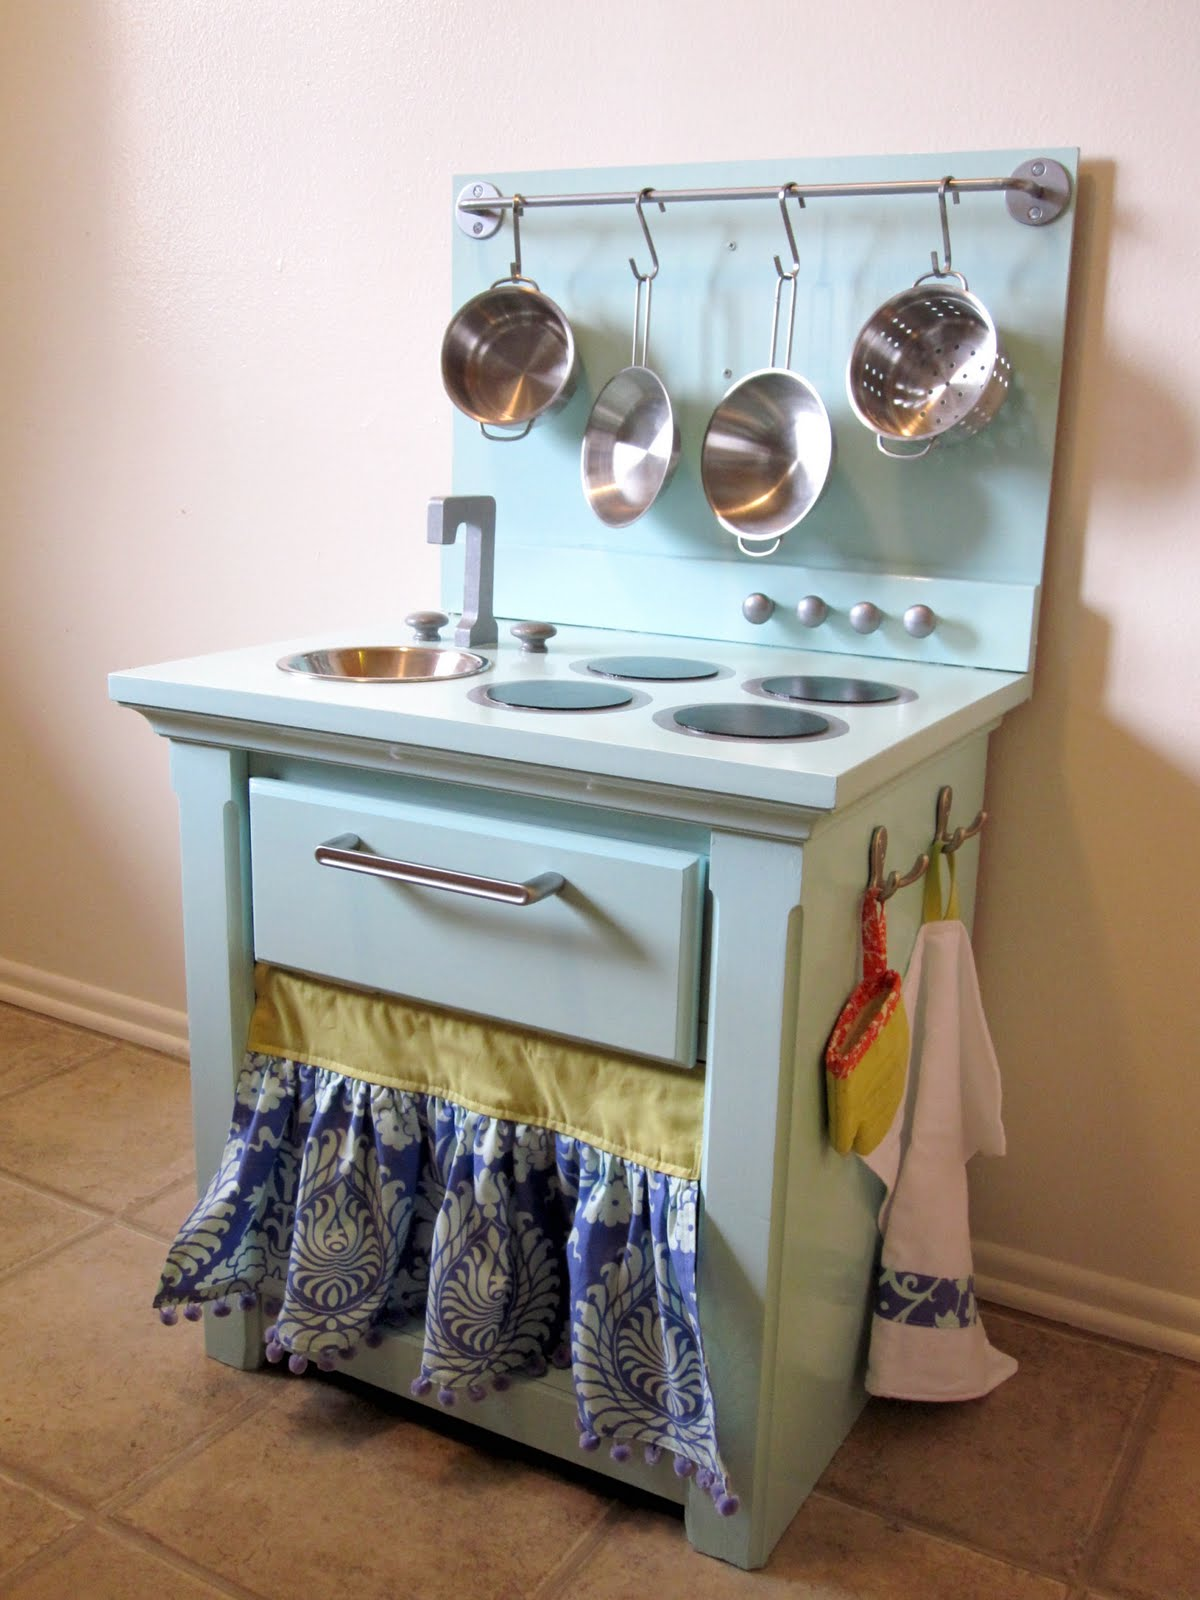 The hawkins family play kitchen for Small kids kitchen